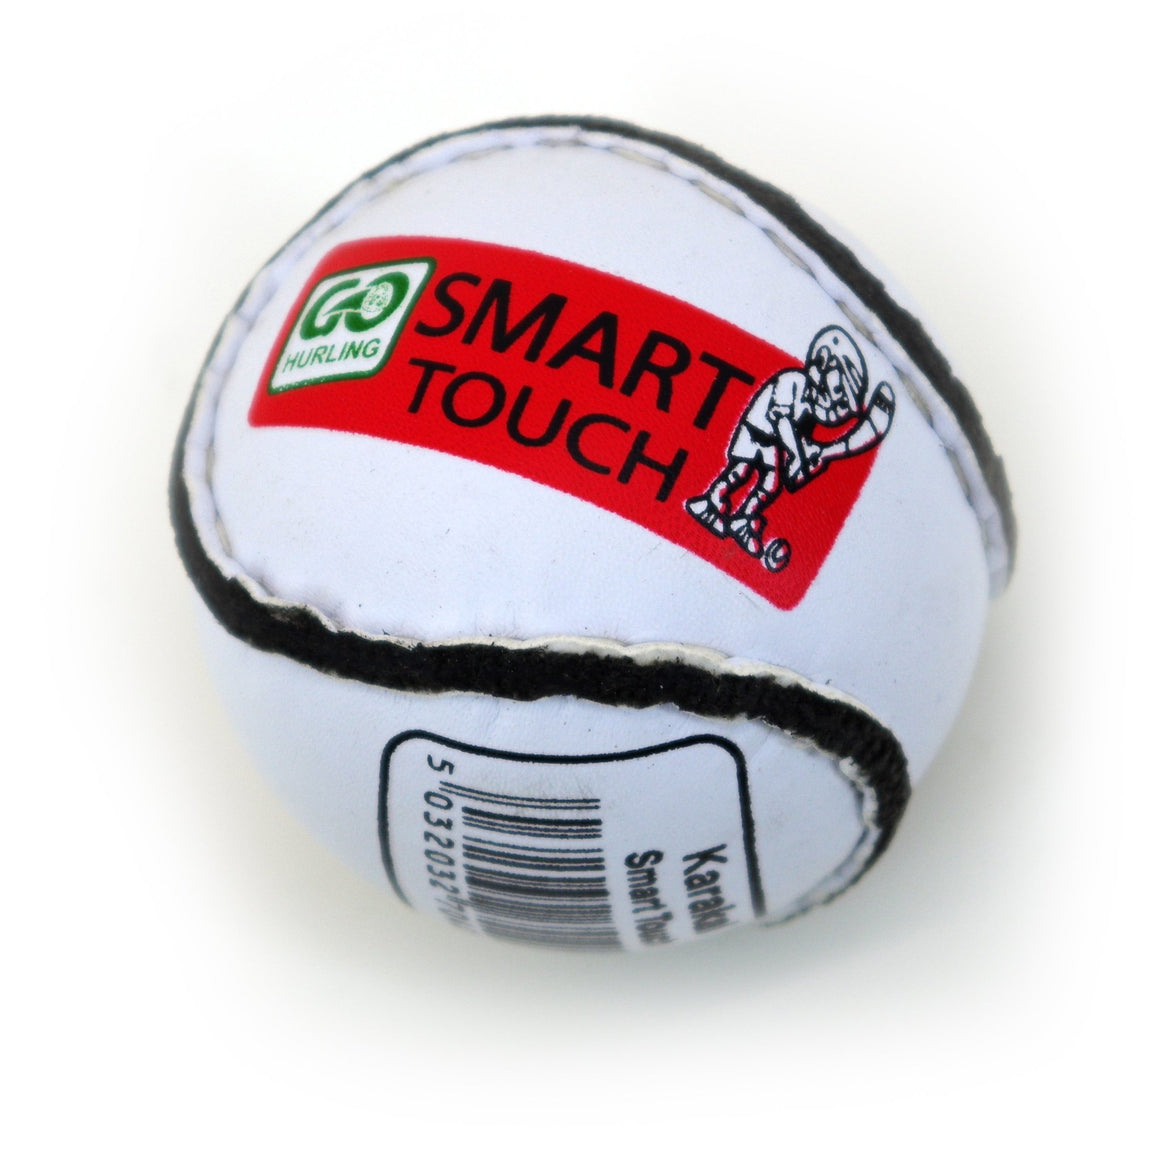 Smart Touch Sliotar